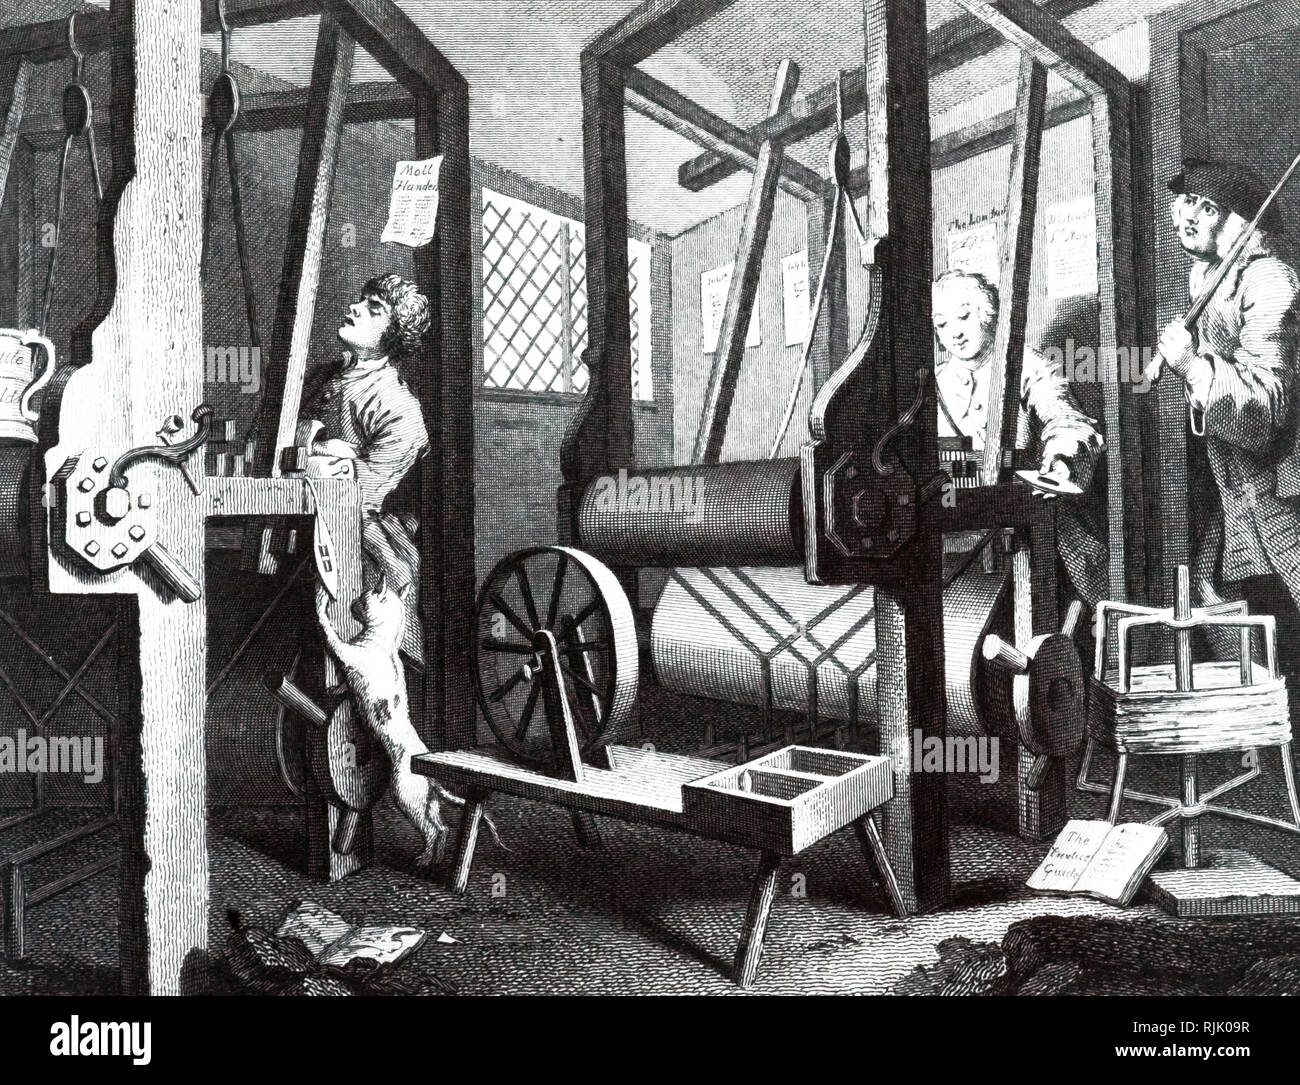 An engraving from the art series 'Industry and Idleness' by William Hogarth. The industrious apprentice quietly gets on with his weaving, while the idle apprentice sleeps off the effects of a night of revelling. William Hogarth (d. 1764) an English painter, printmaker, pictorial satirist, social critic, and editorial cartoonist. Dated 18th century - Stock Image